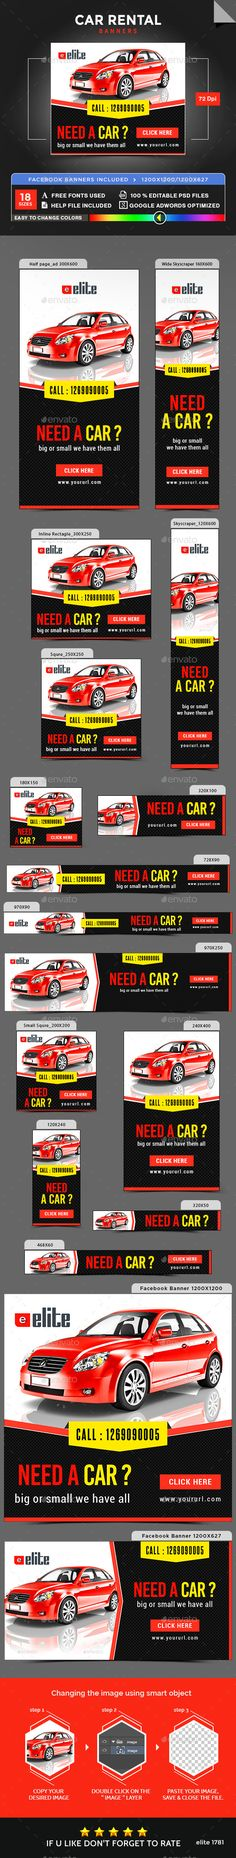 Car Rental Banners Design Template - Banners & Ads Web Element Template PSD. Download here: https://graphicriver.net/item/car-rental-banners/17728331?s_rank=27&ref=yinkira